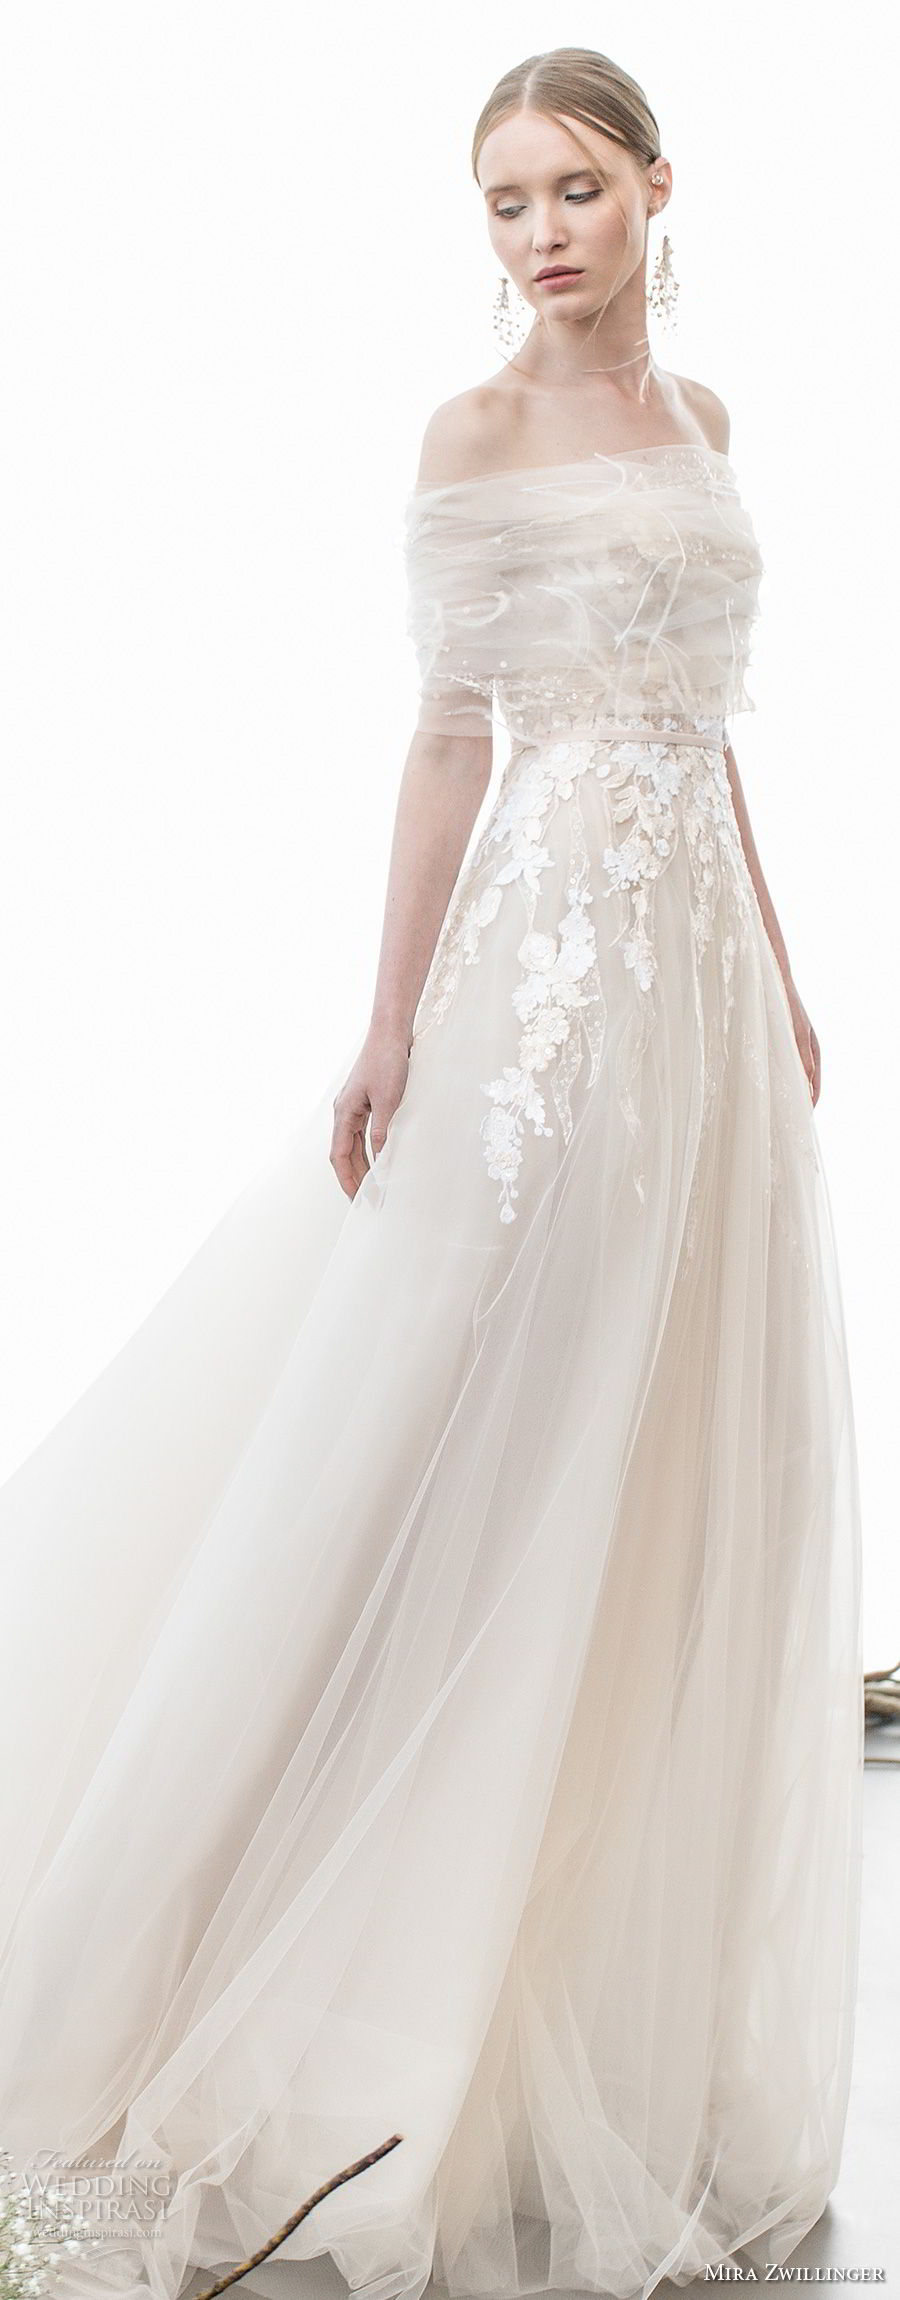 Romantic Look Dresses in Soft Color